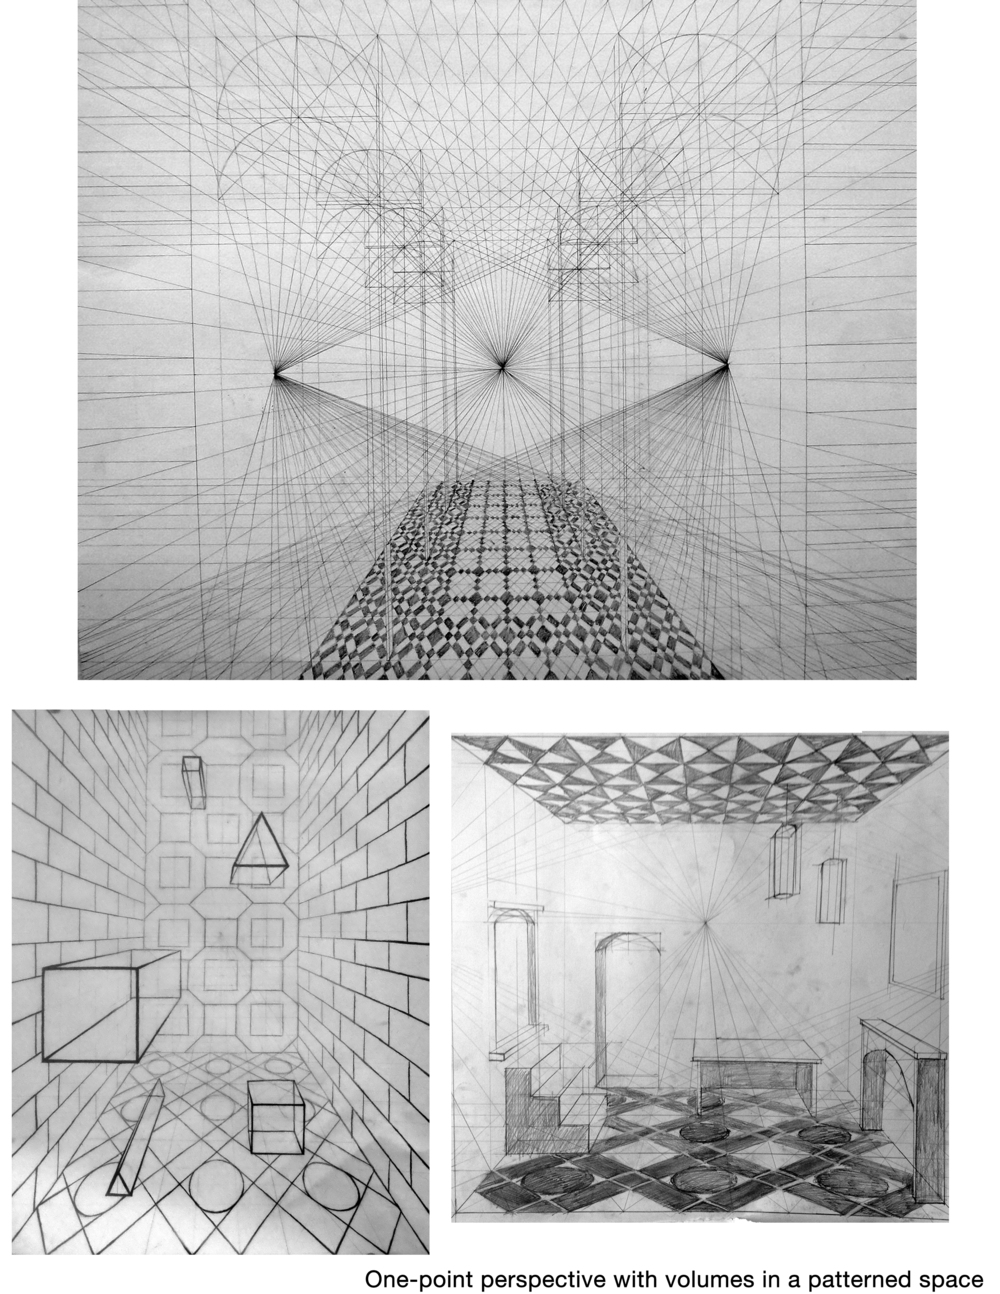 56-onepointperspective.jpg